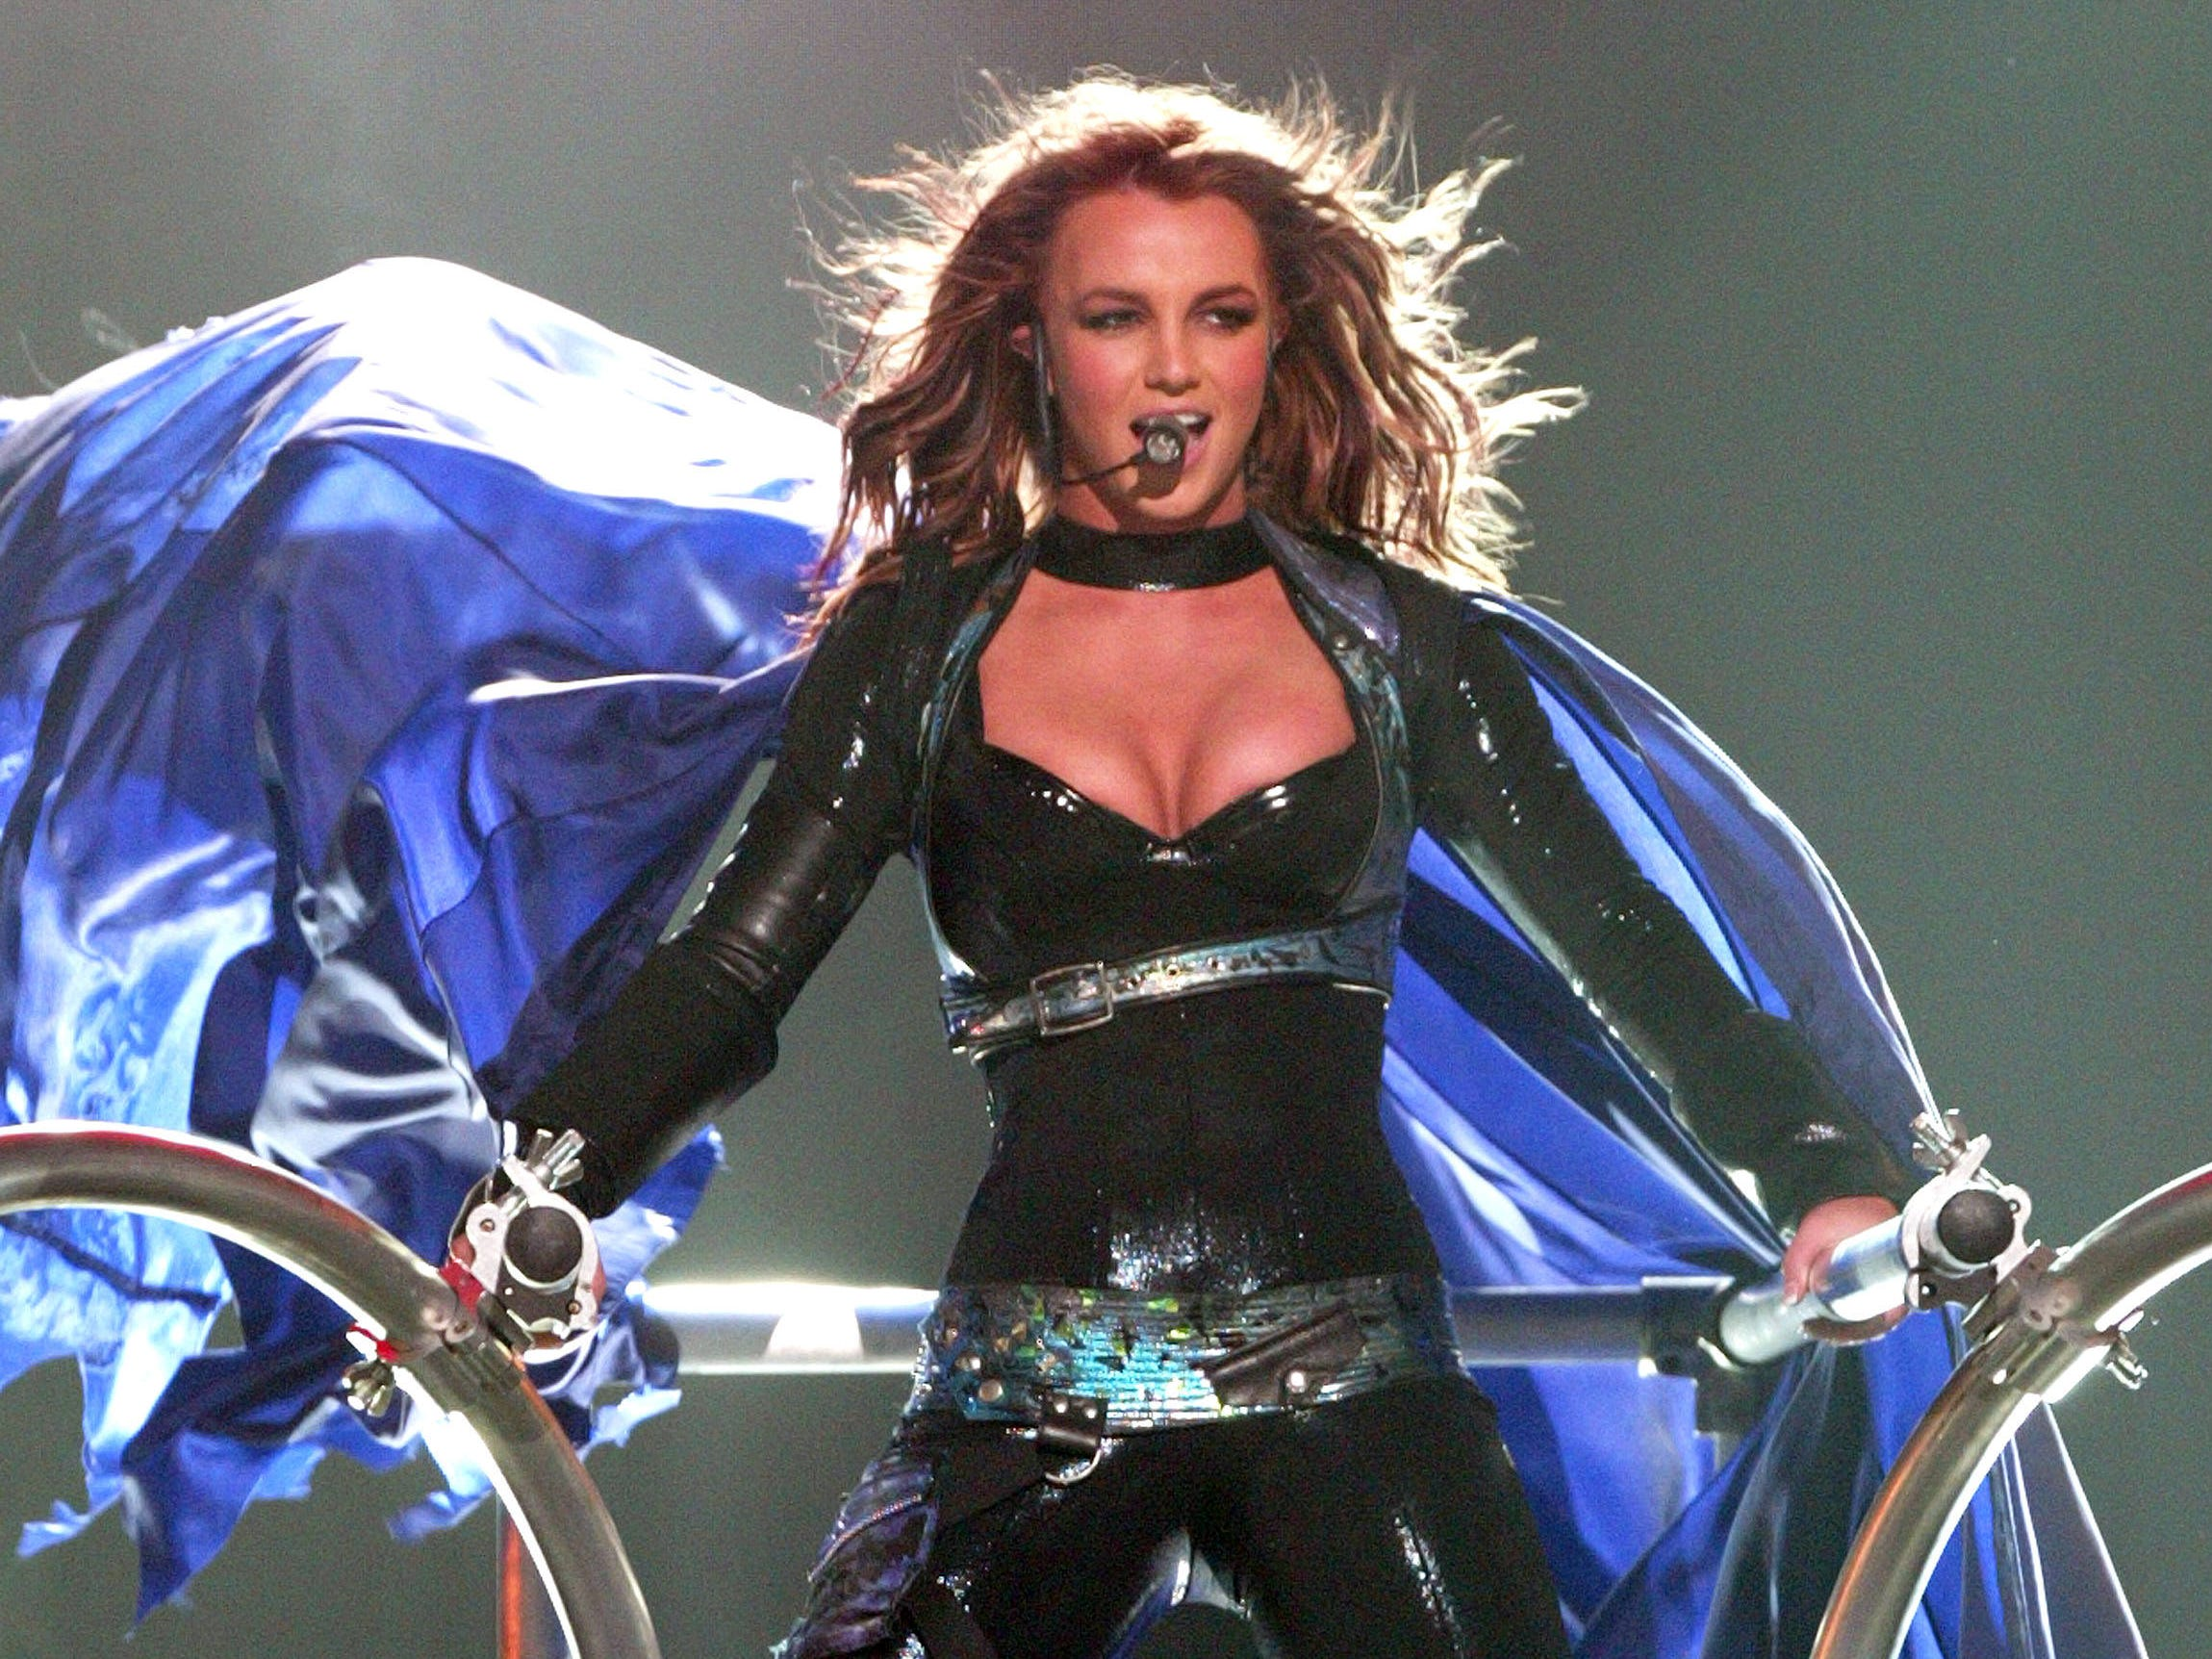 MIAMI - MARCH 28:  (U.S. TABS AND STAR MAGAZINE OUT) Singer Britney Spears performs onstage during Showtime's live broadcast of Britney's Onyx Hotel tour show at the American Airlines Arena March 28, 2004 in Miami, Florida. (Photo by Frank Micelotta/Getty Images) *** Local Caption *** Britney Spears ORG XMIT: 3133246 GTY ID:  3133246FM014_brit